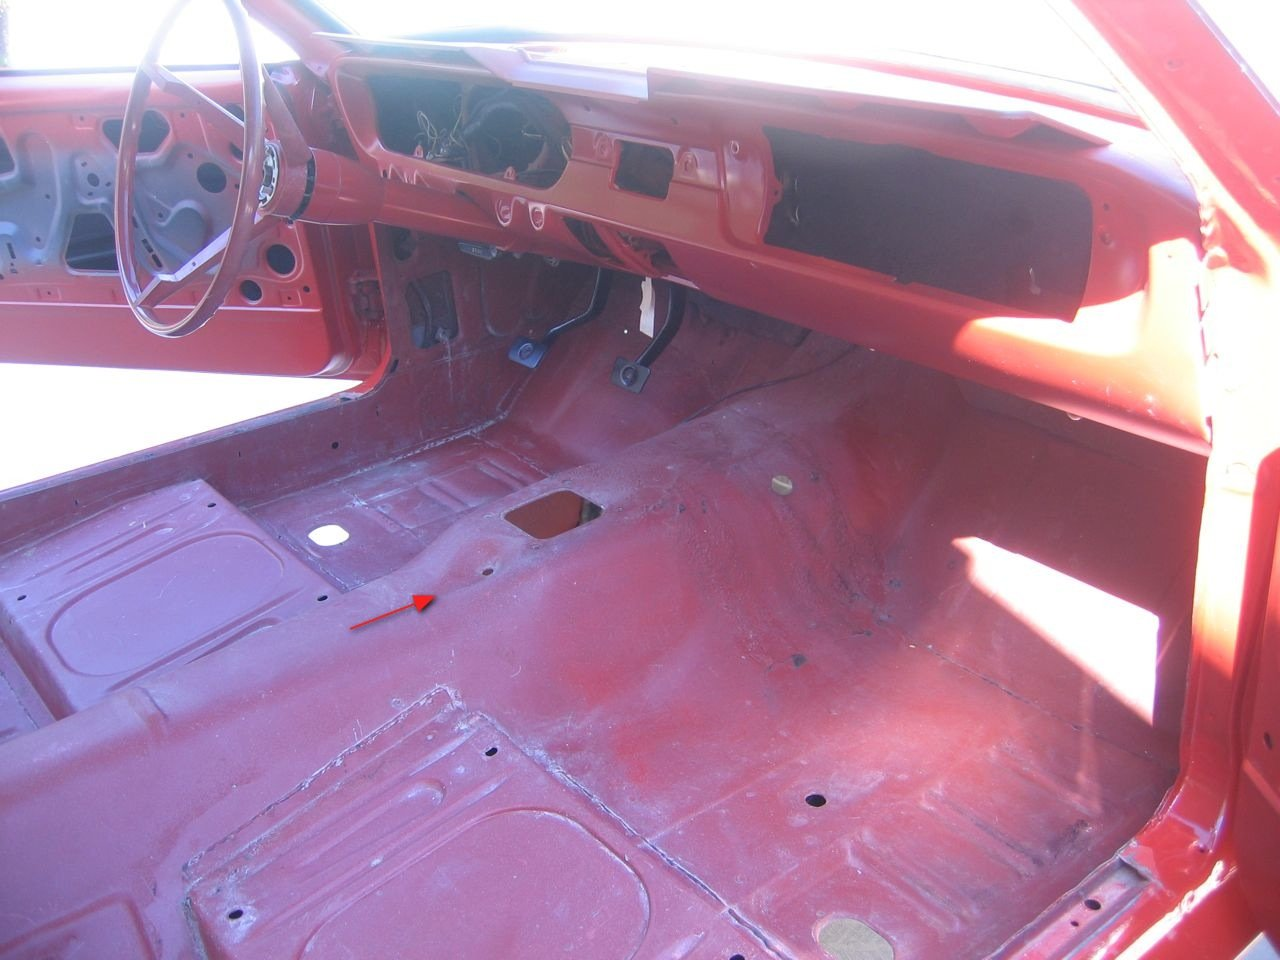 Exterior Light Wiring Diagram 65 Mustang Trusted 1965 Reverse Block And Schematic Diagrams U2022 Fan Belt